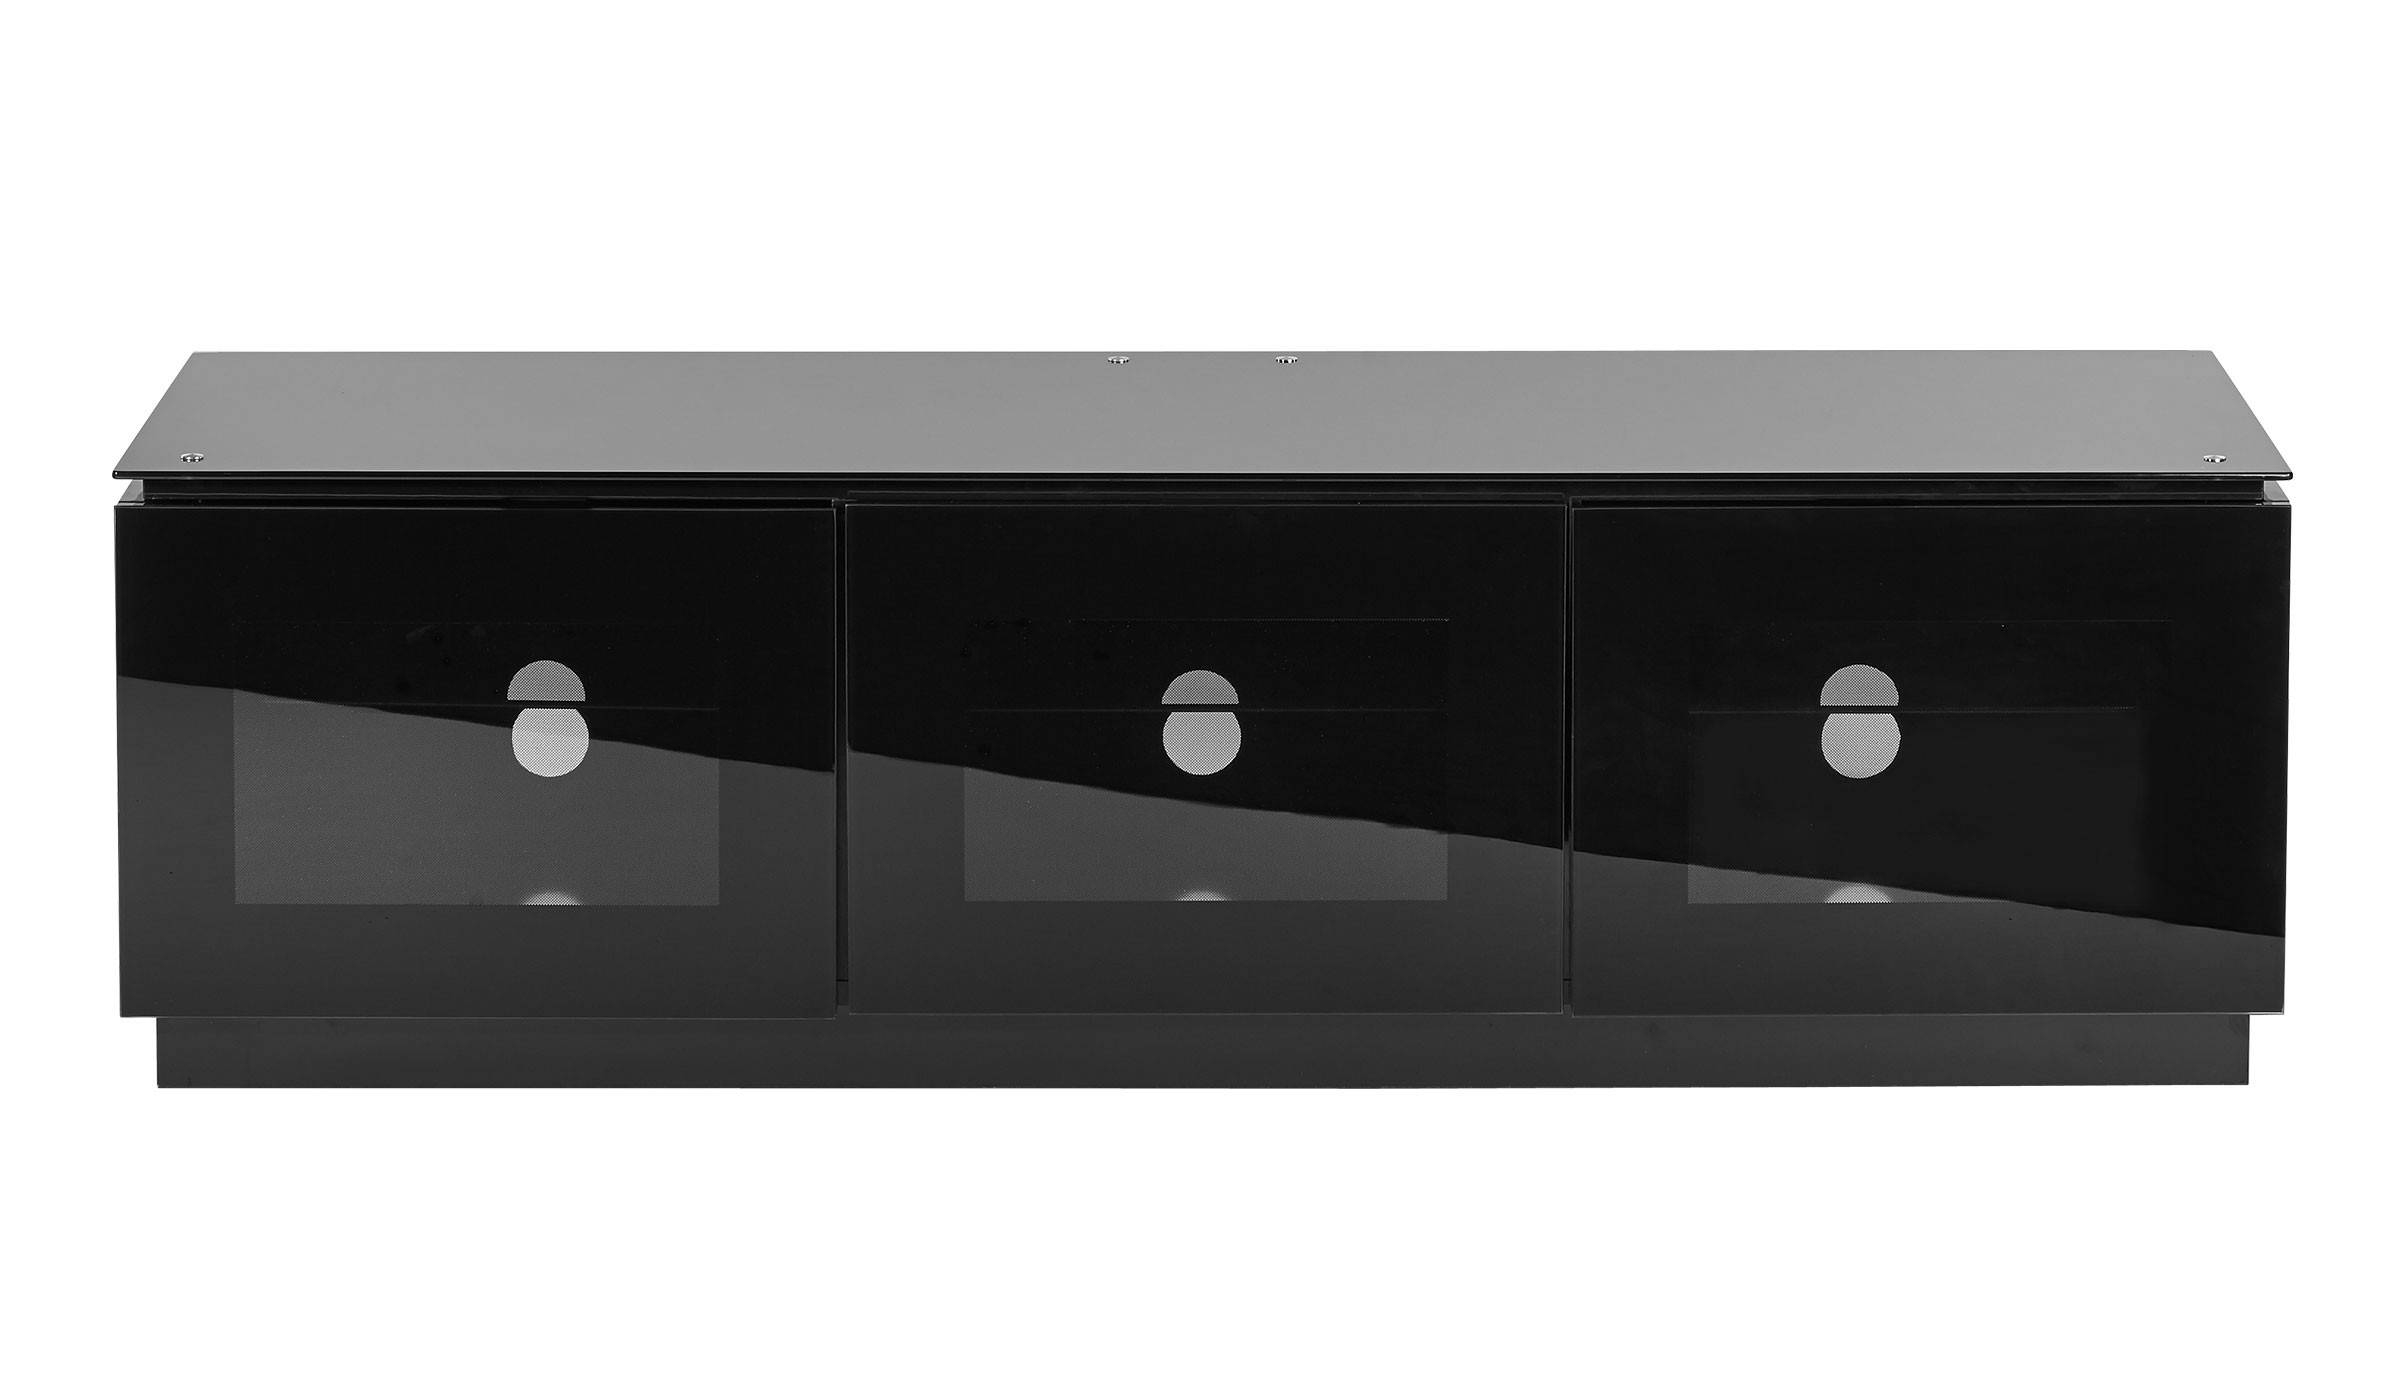 Black Gloss Tv Unit Up To 65 Inch Flat Tv | Mmt-D1500 with regard to Black Gloss Sideboards (Image 4 of 30)